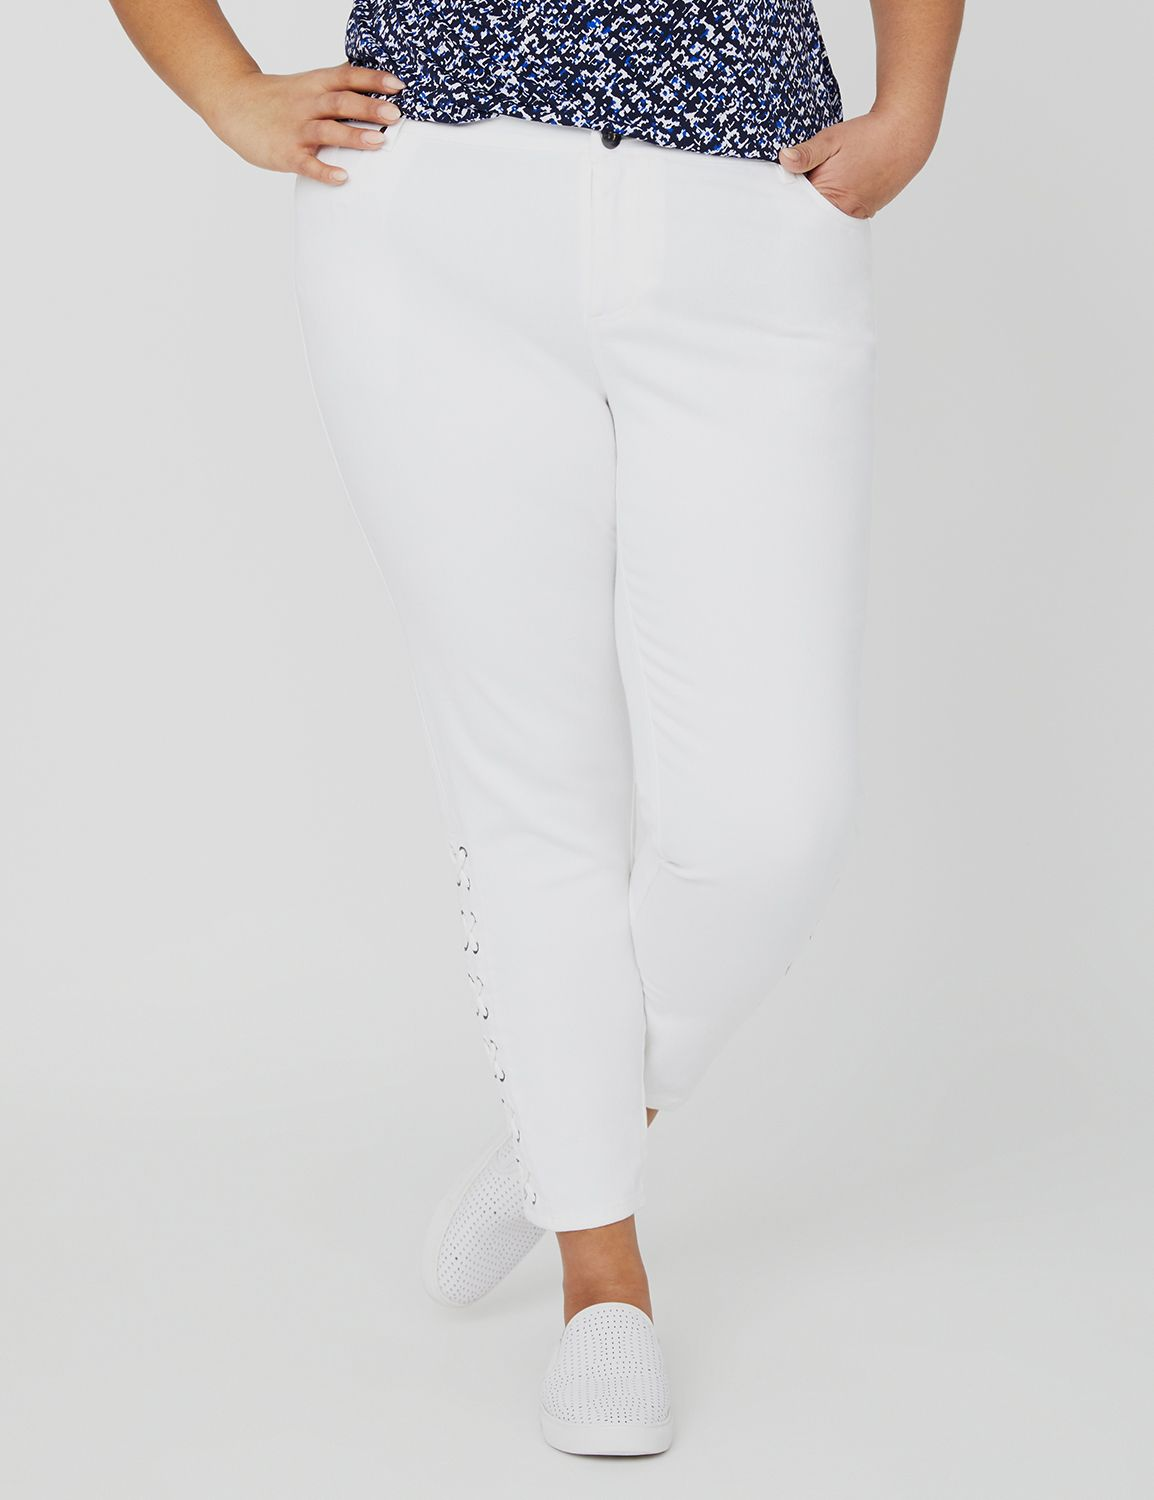 Curvy Collection Lace-Up White Jean 1091485 Curvy Collection Sateen Whi MP-300098718